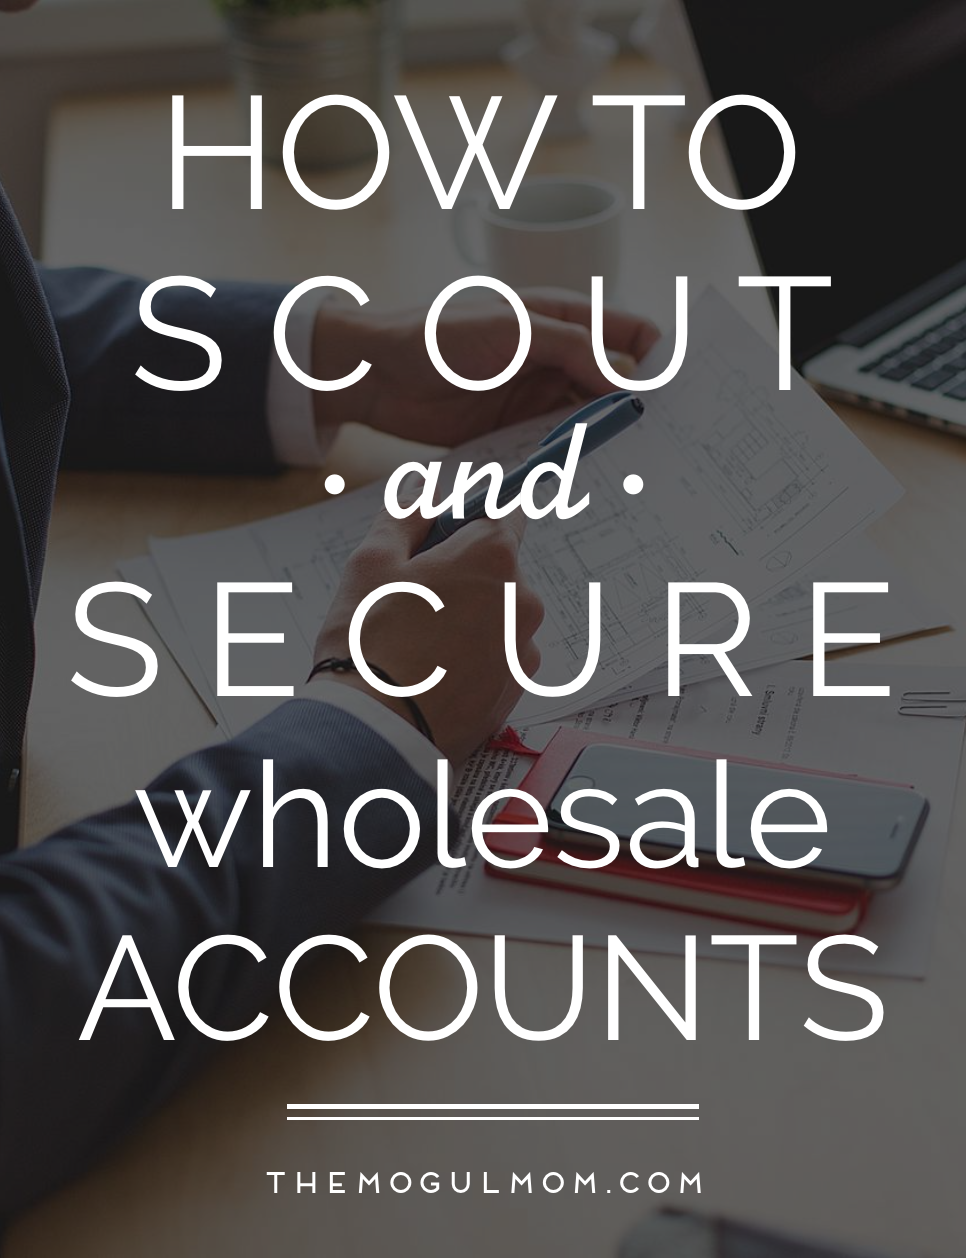 5 To Do's for Scouting and Securing Wholesale Accounts